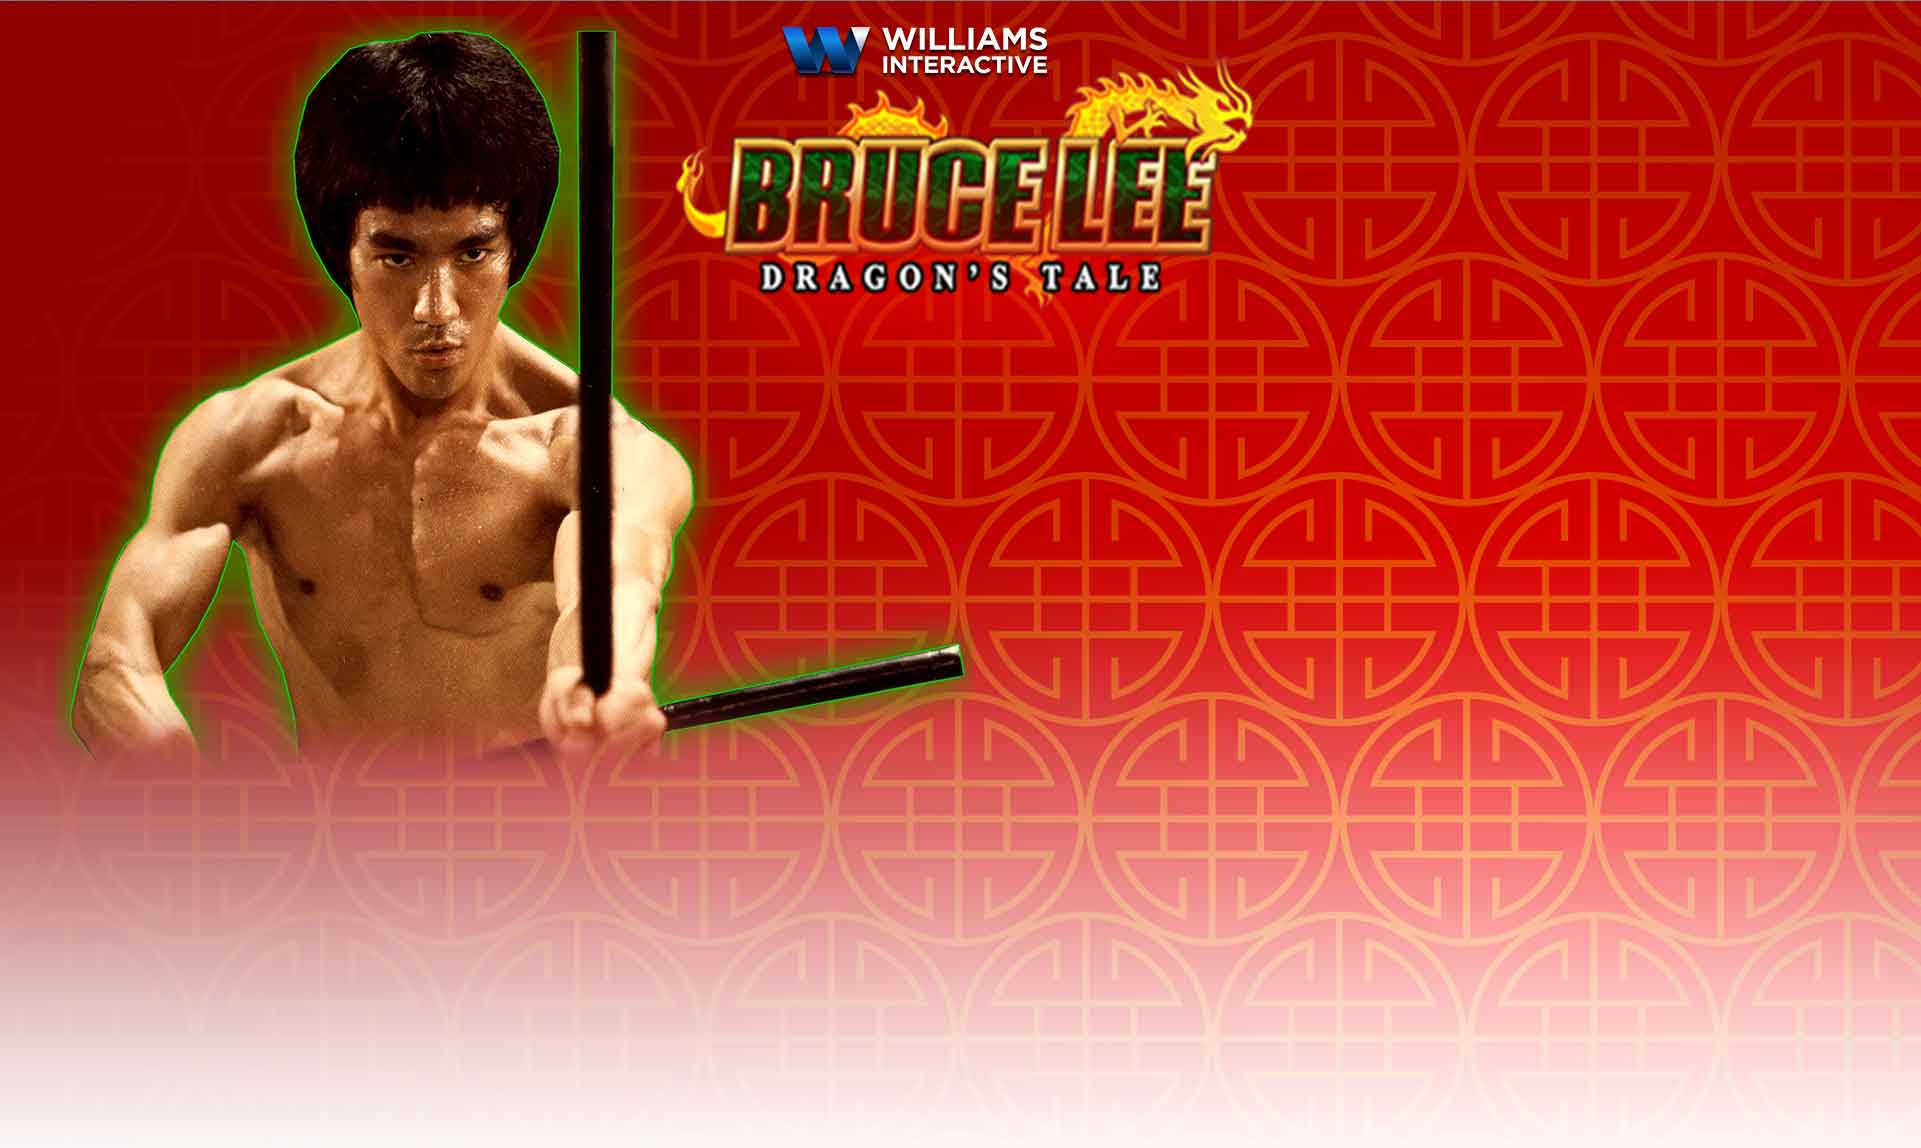 Bruce Lee Dragon's Tale